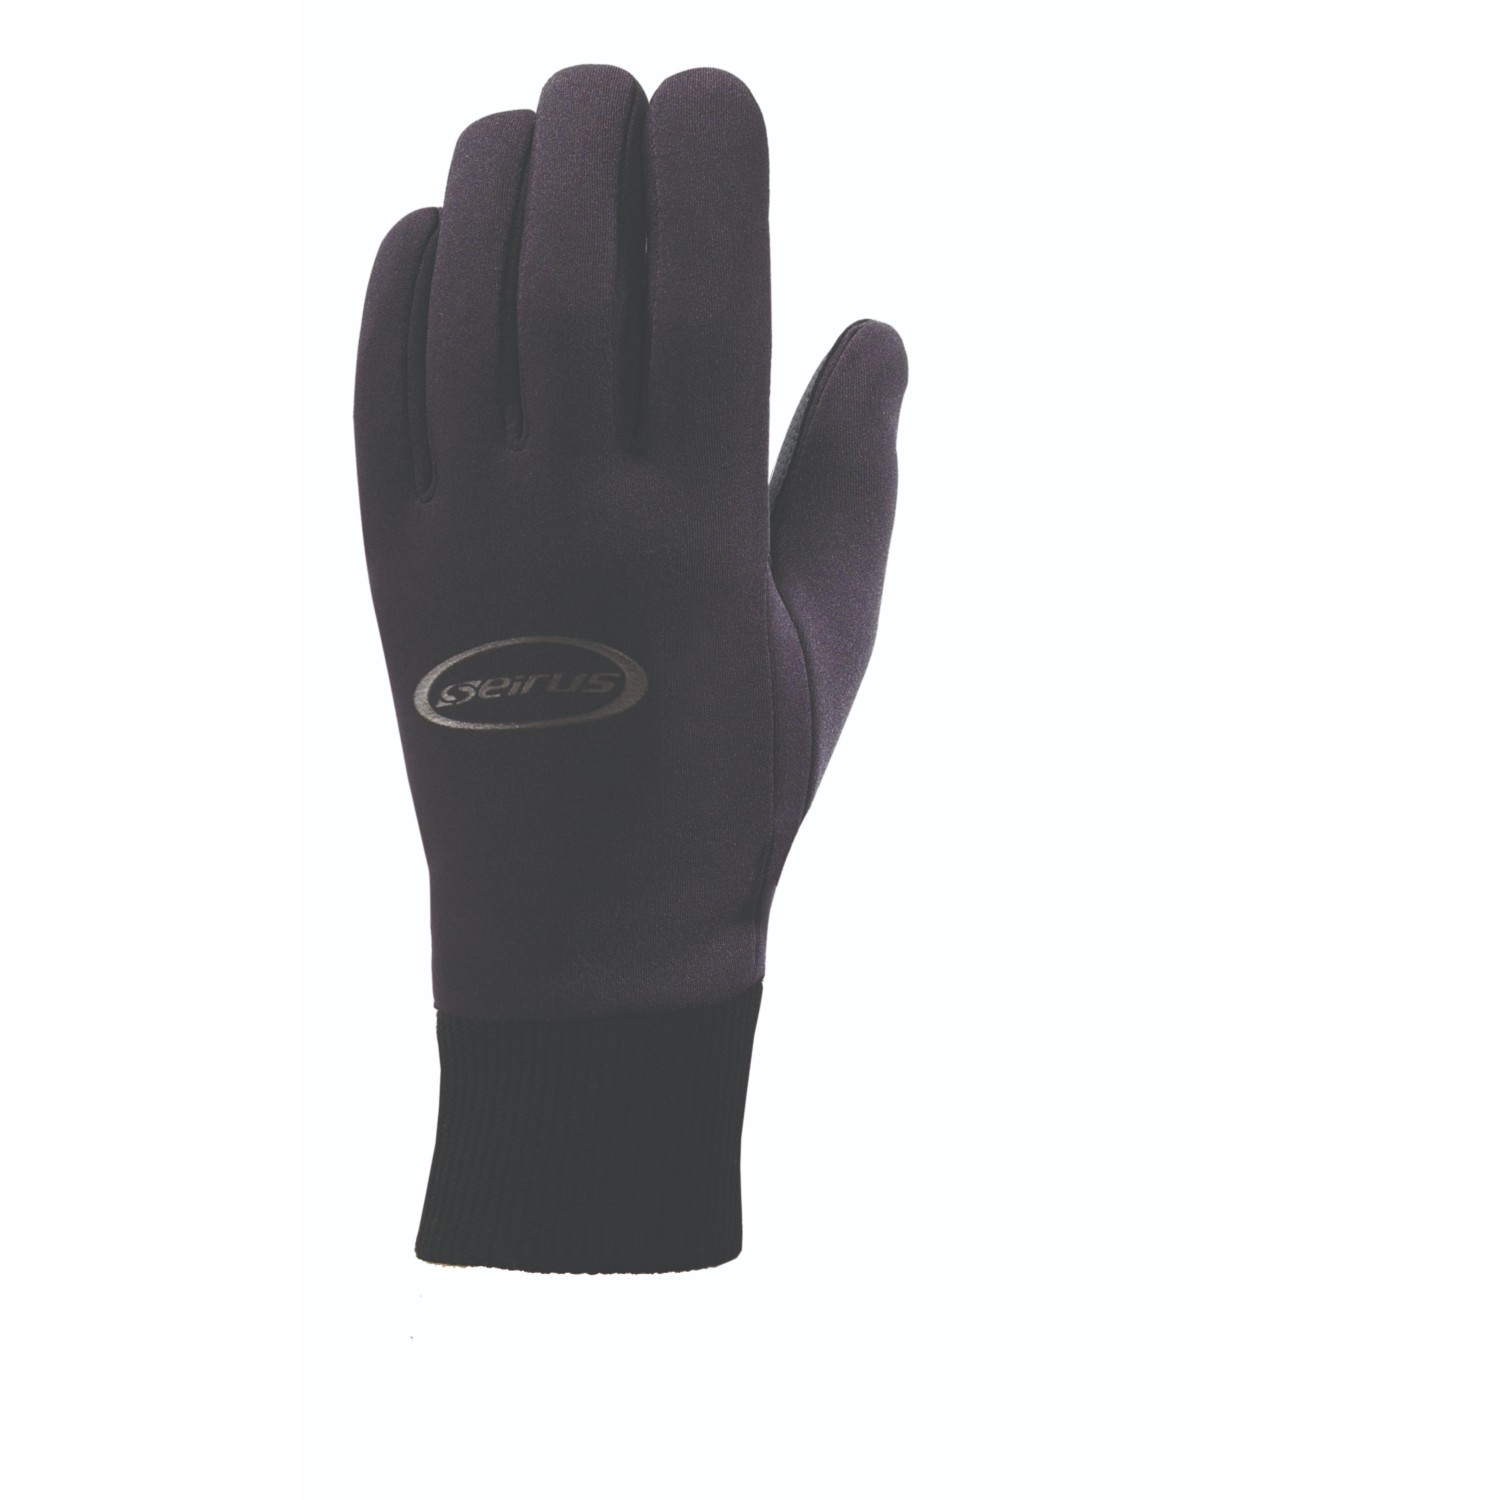 Seirus Heatwave All Weather Glove Black M